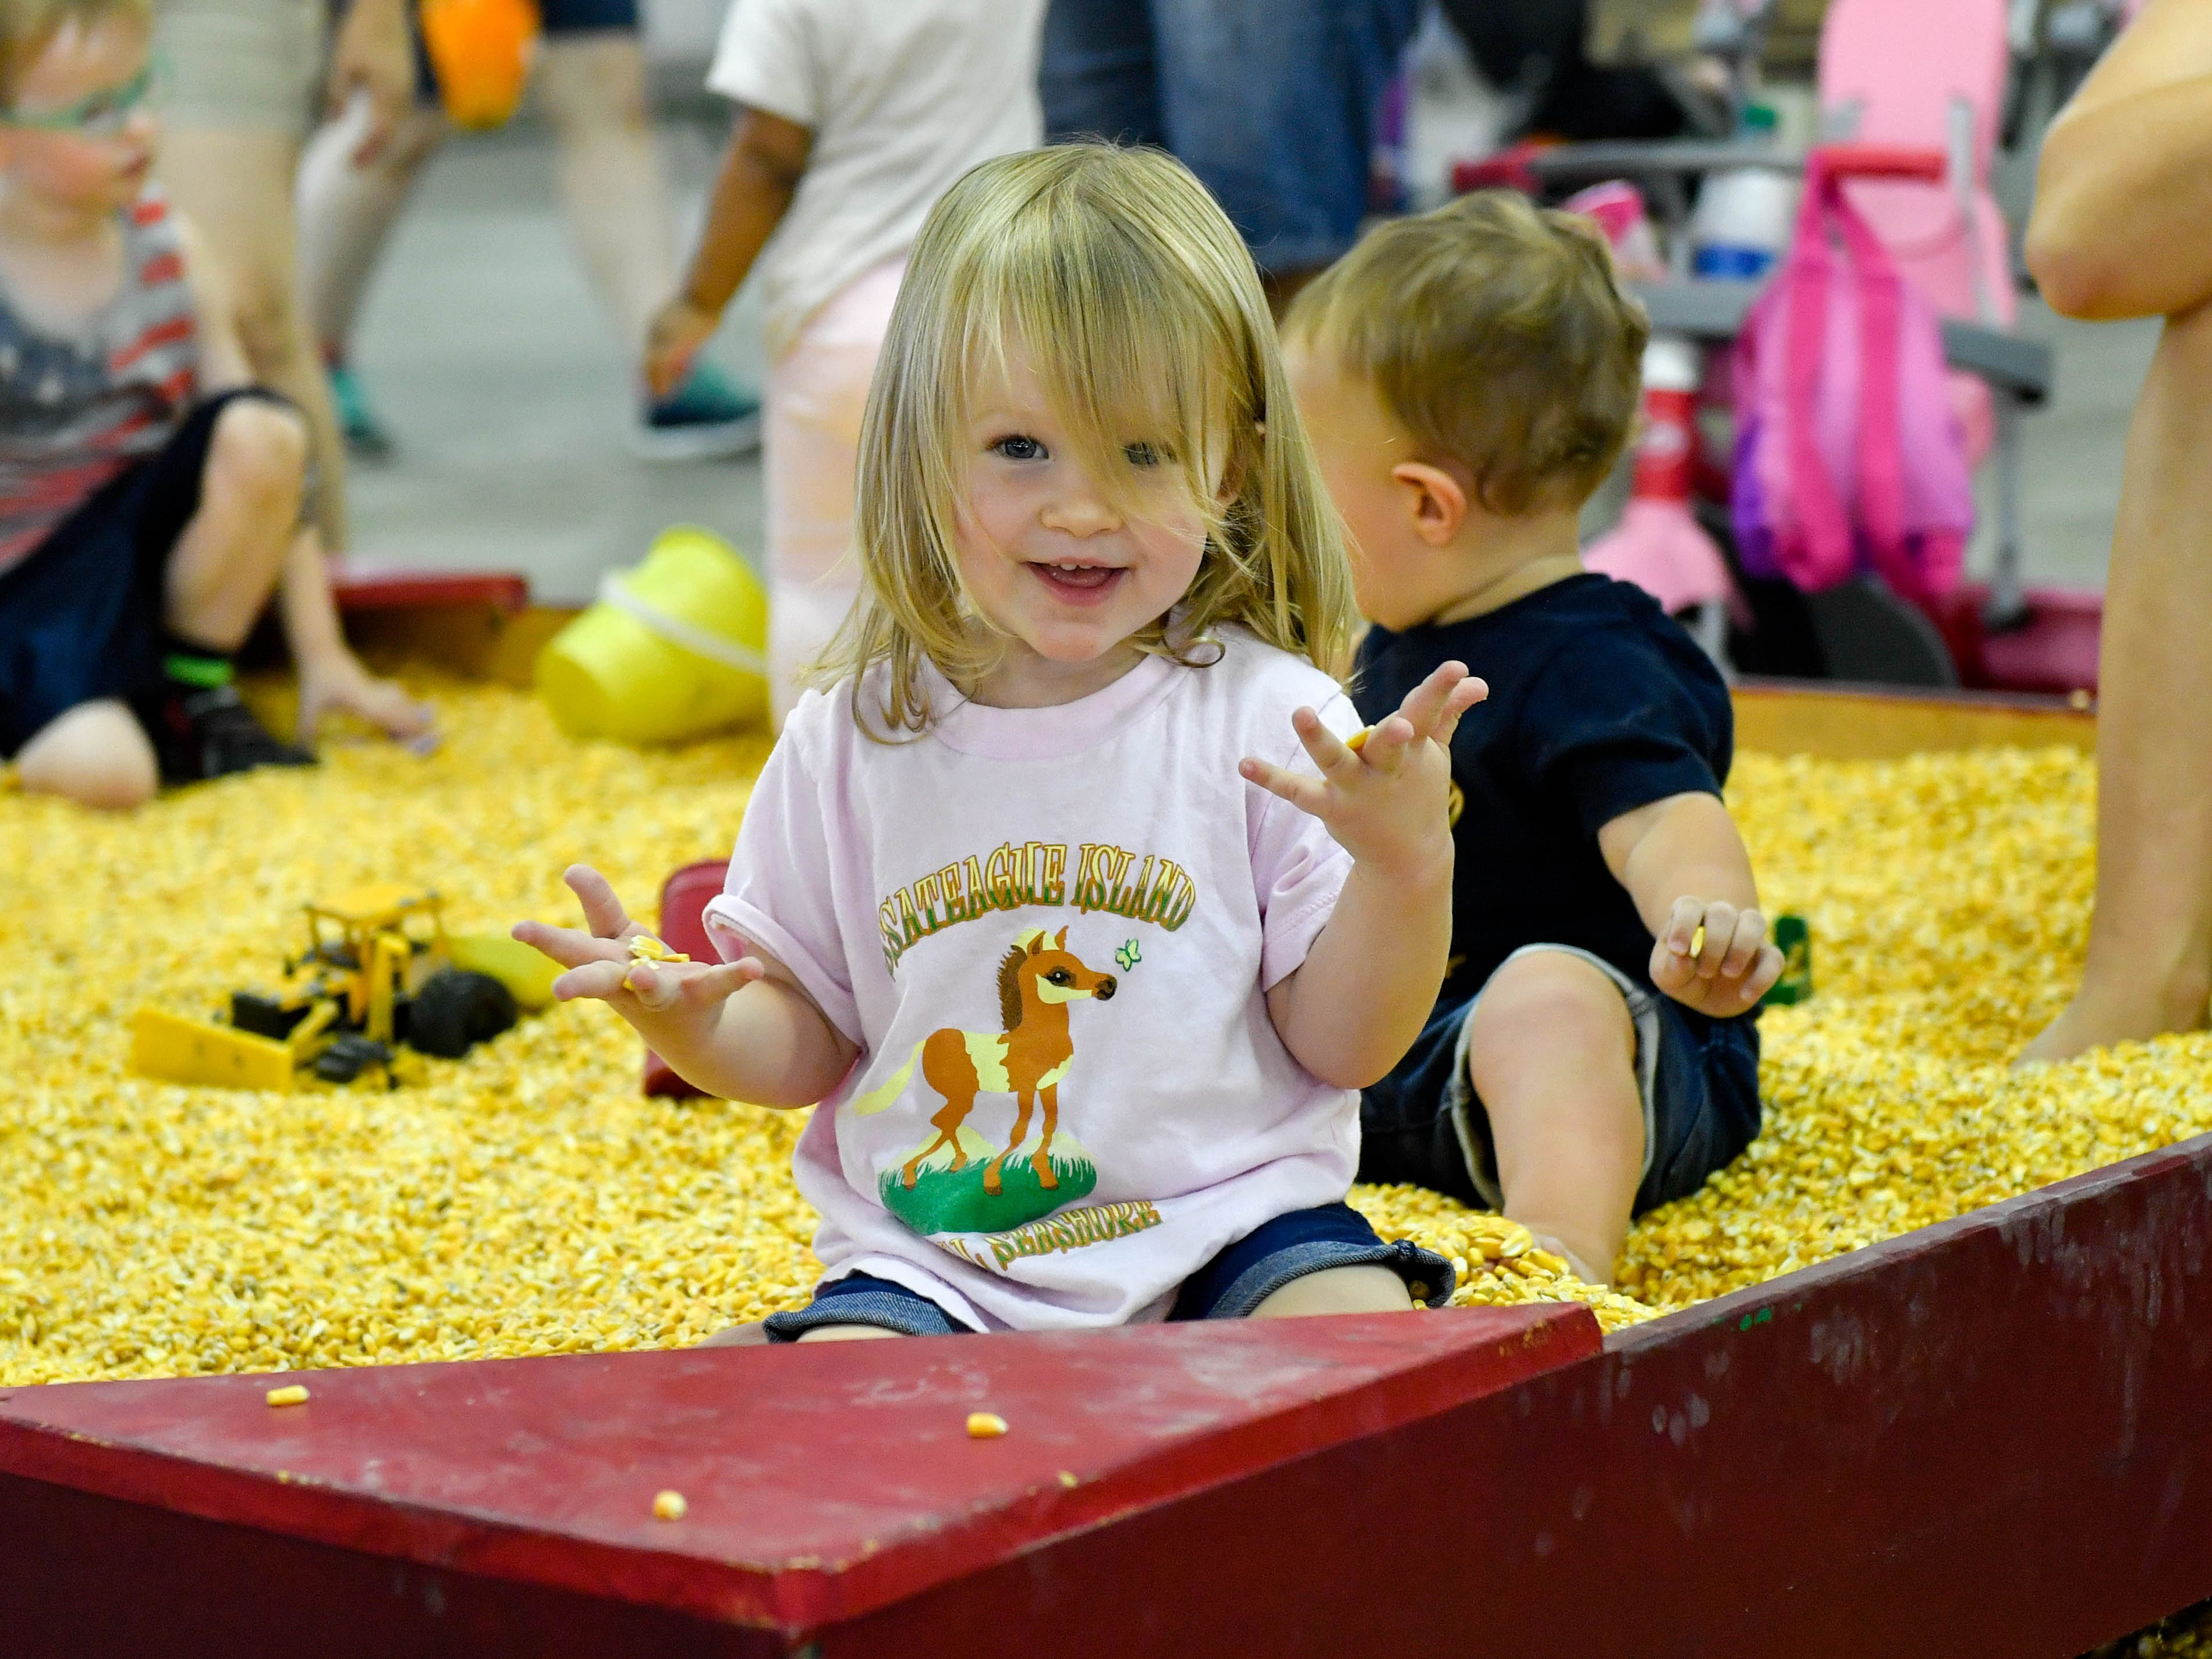 The petting zoo includes a corn-box that children can play in for hours.